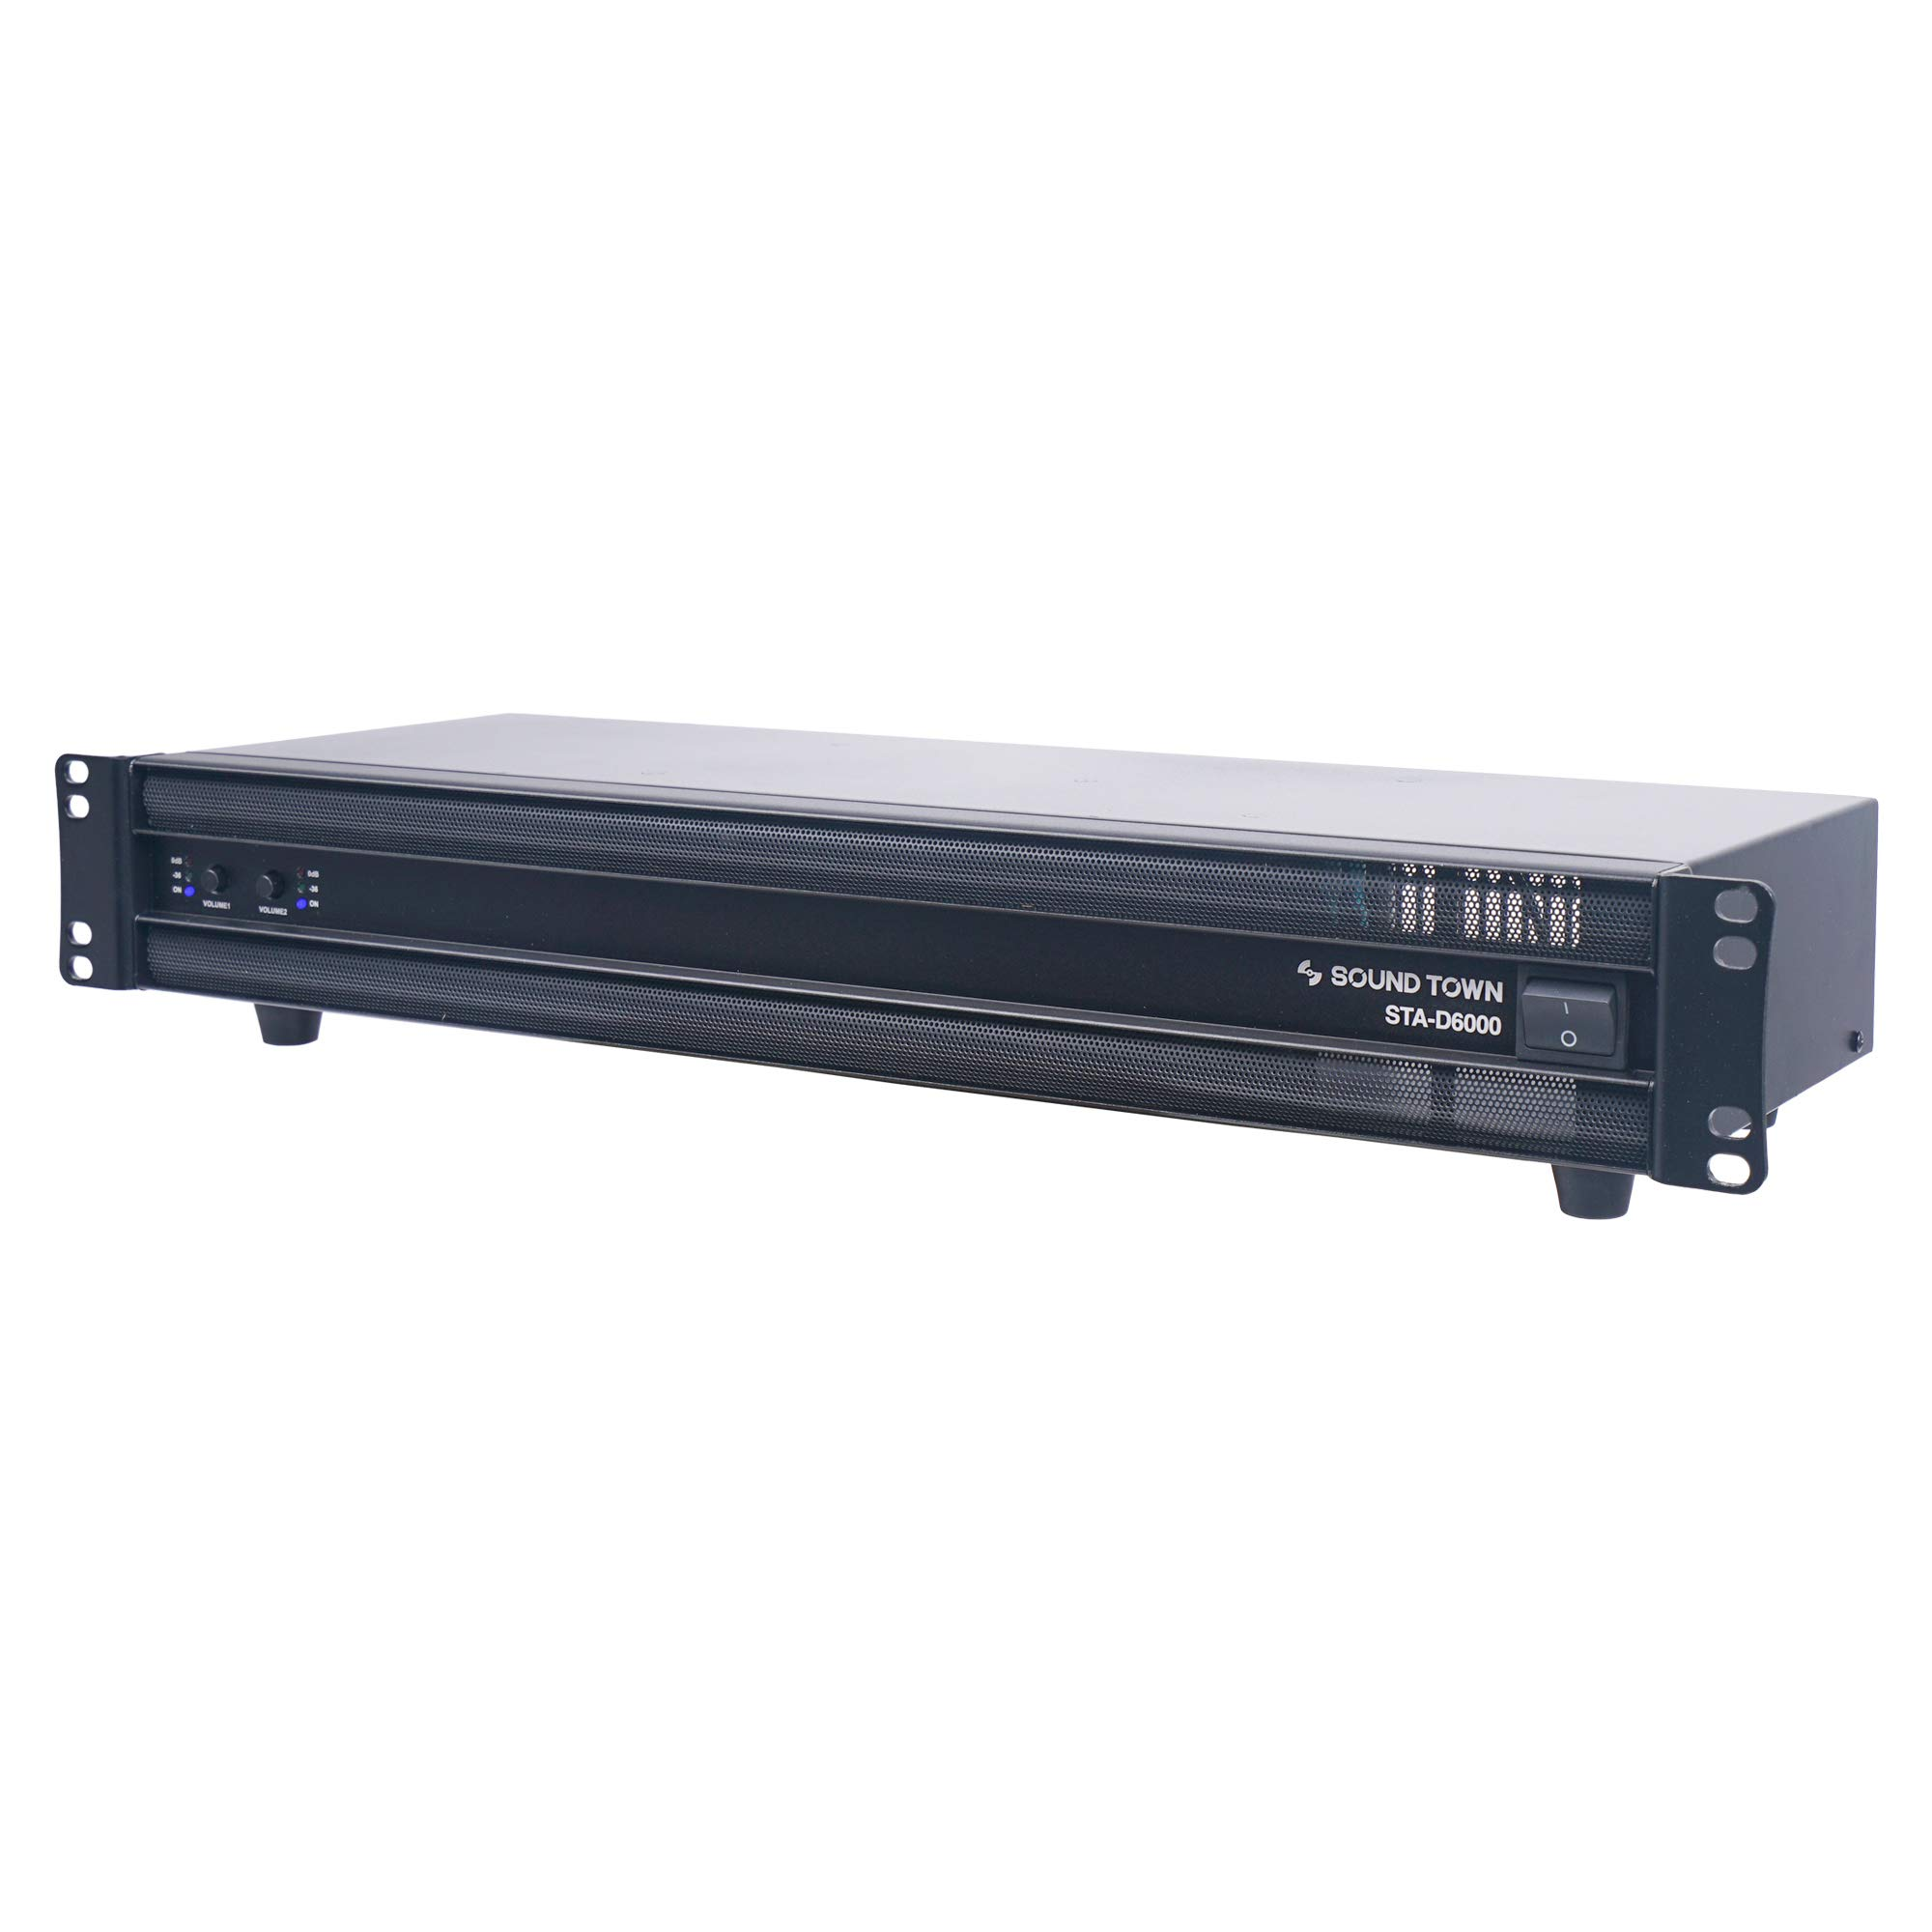 Sound Town Class-D 6000W Peak Output, Ultra-Lightweight, DJ PA Pro Audio 2-Channel Power Amplifier, 2x 750W at 8-ohm (STA-D6000)